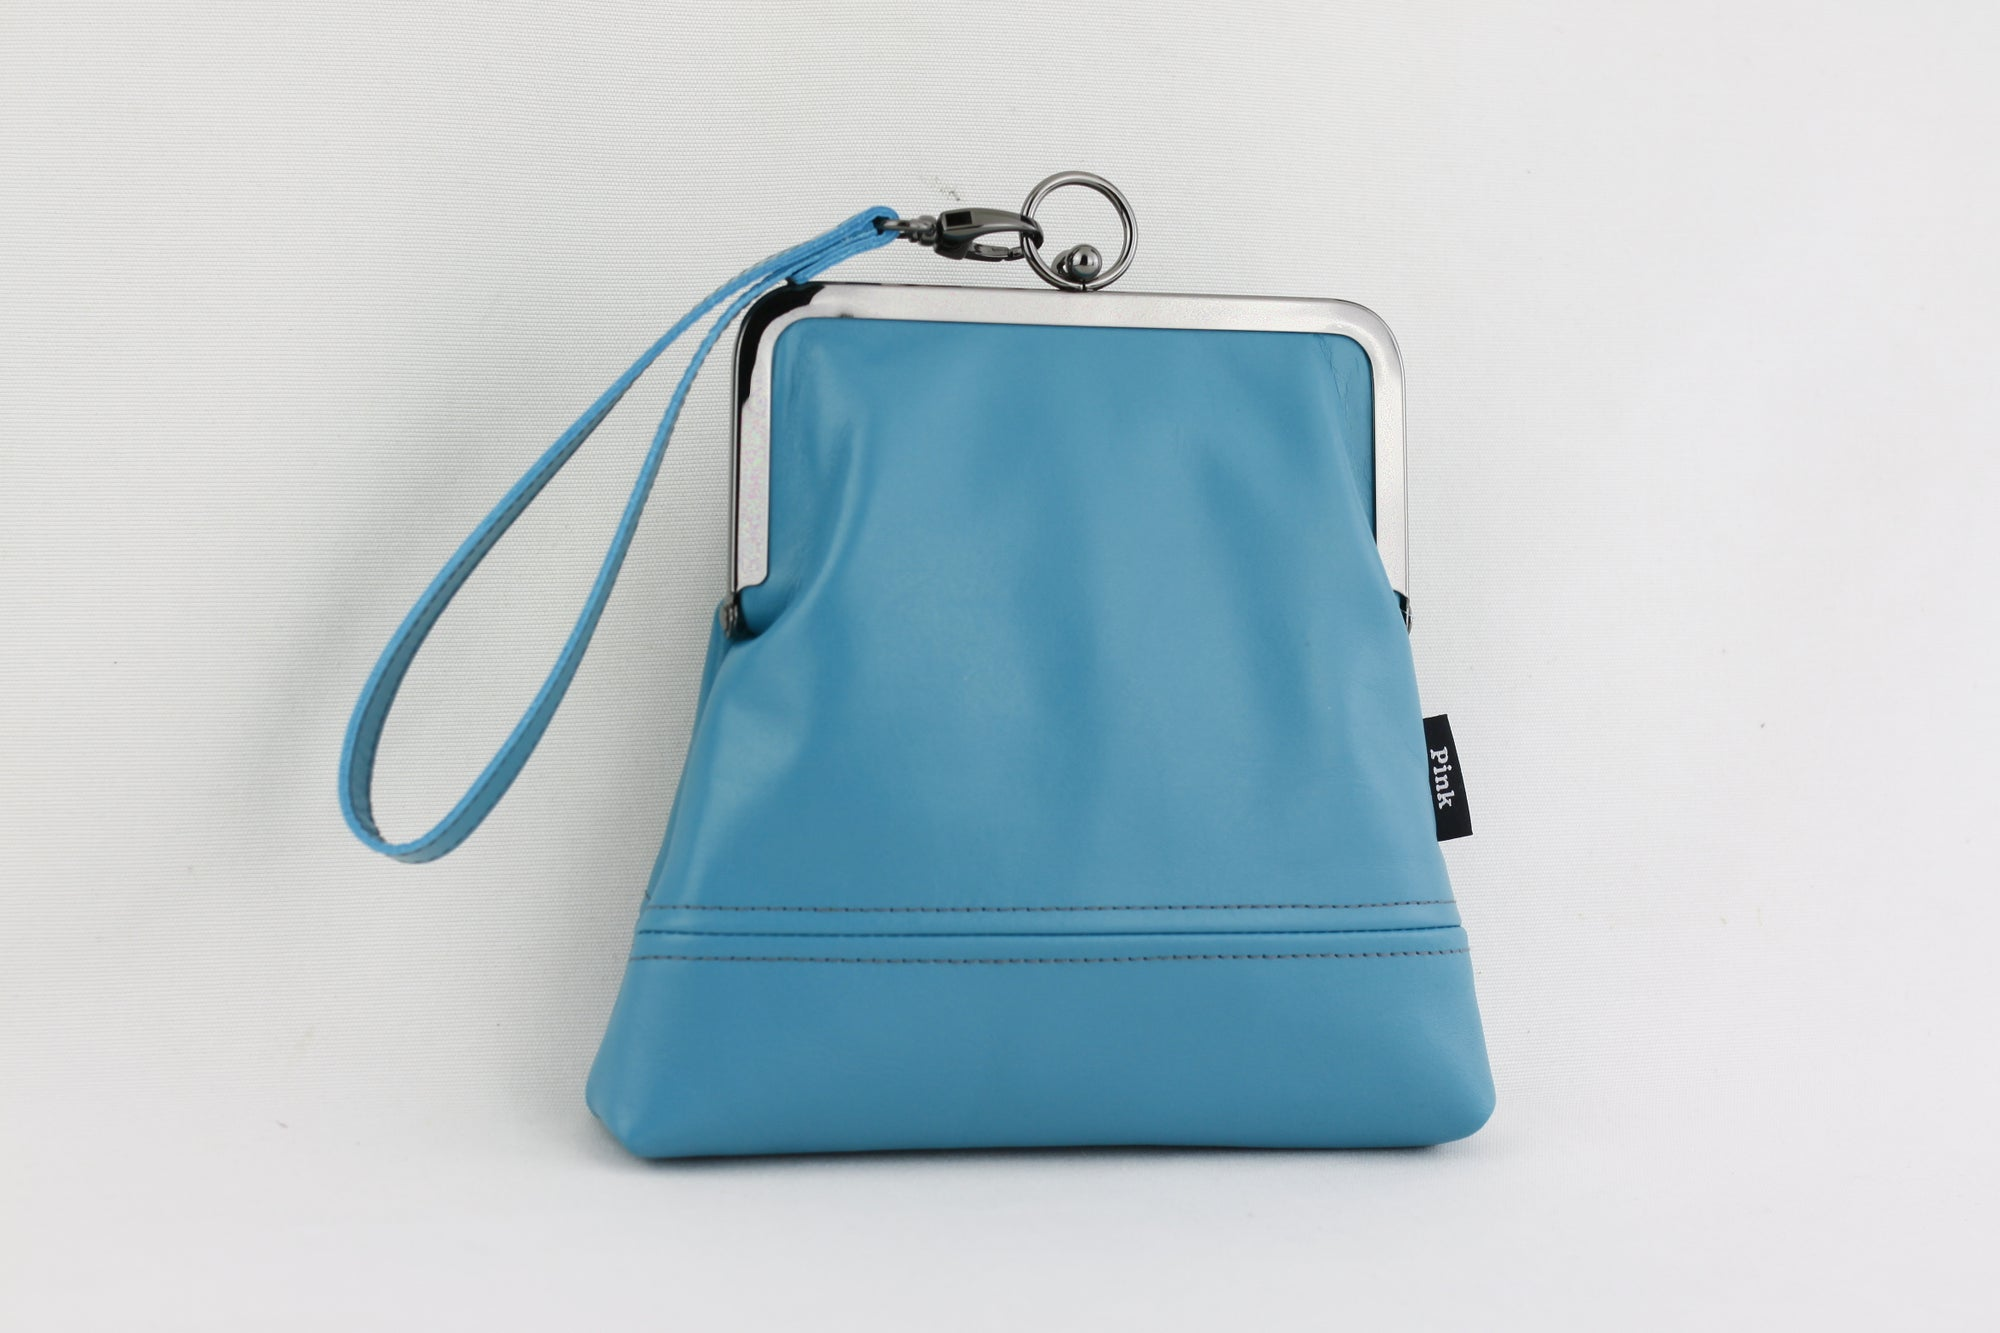 Handmade Leather Wristlet Bag in Teal Blue | PINKOASIS